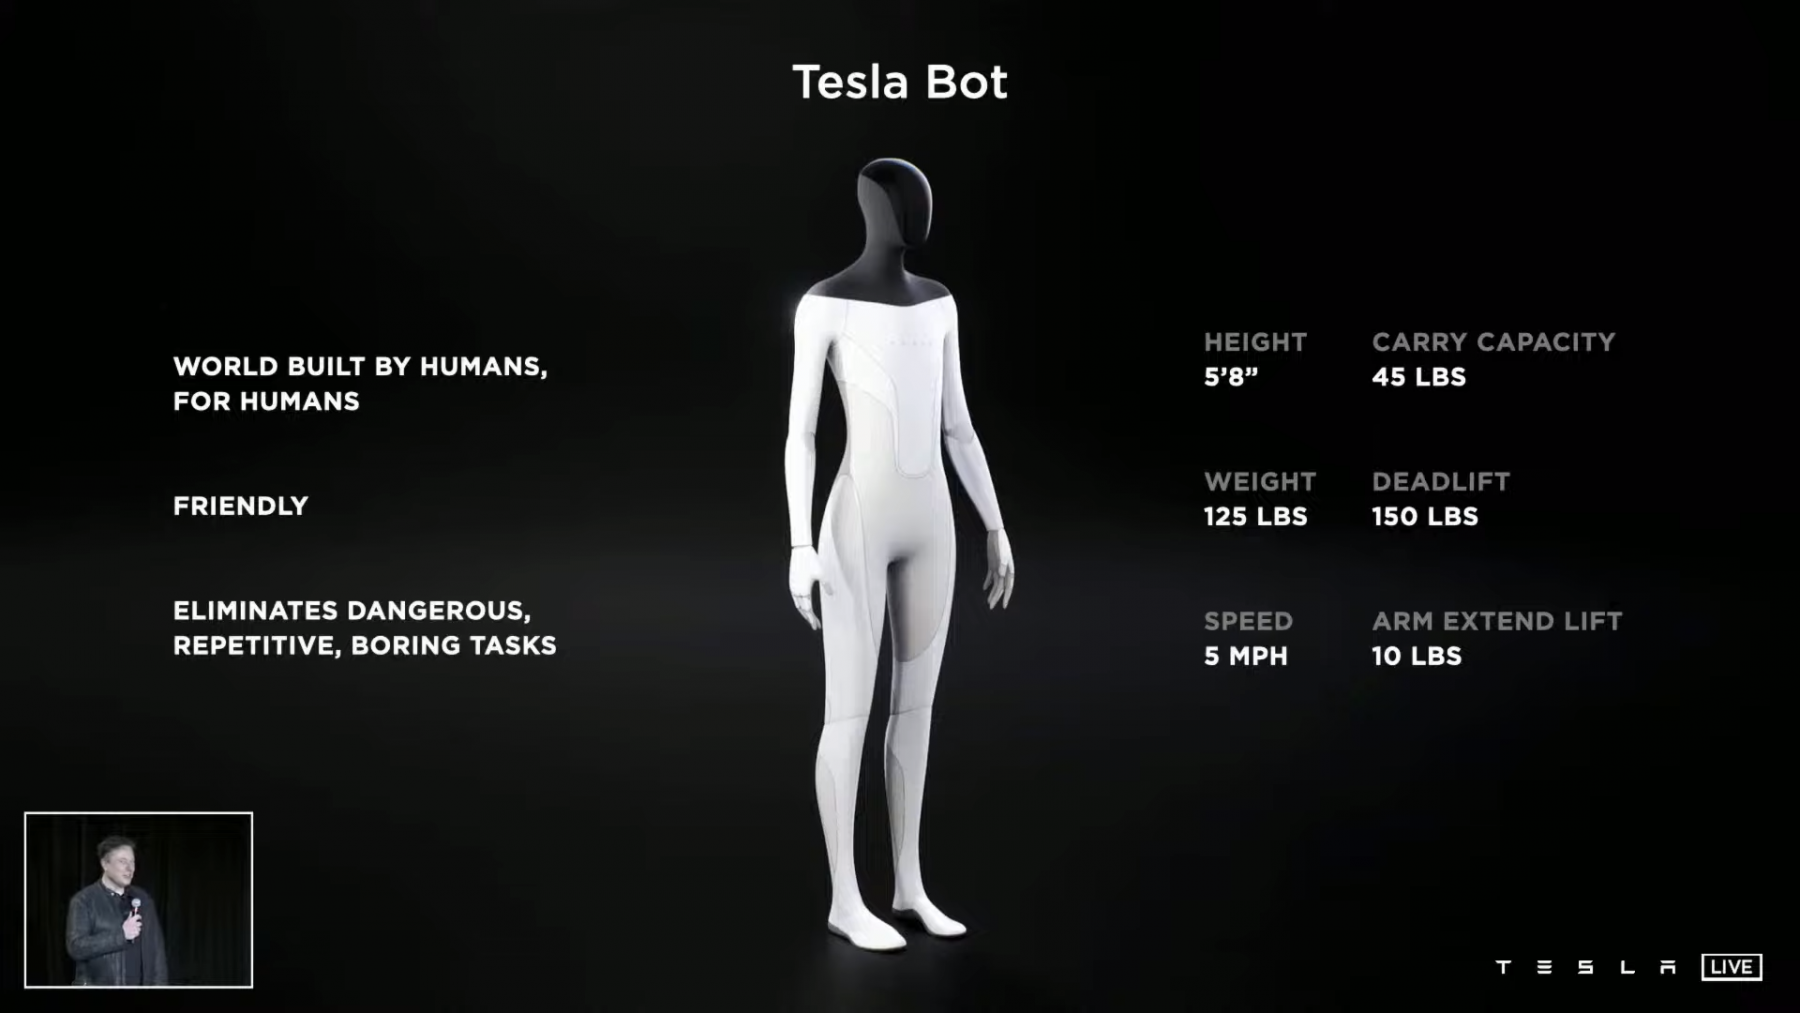 Screenshot from Tesla's AI Day broadcast with information about the Tesla Bot. Credit: CNET Youtube/Tesla